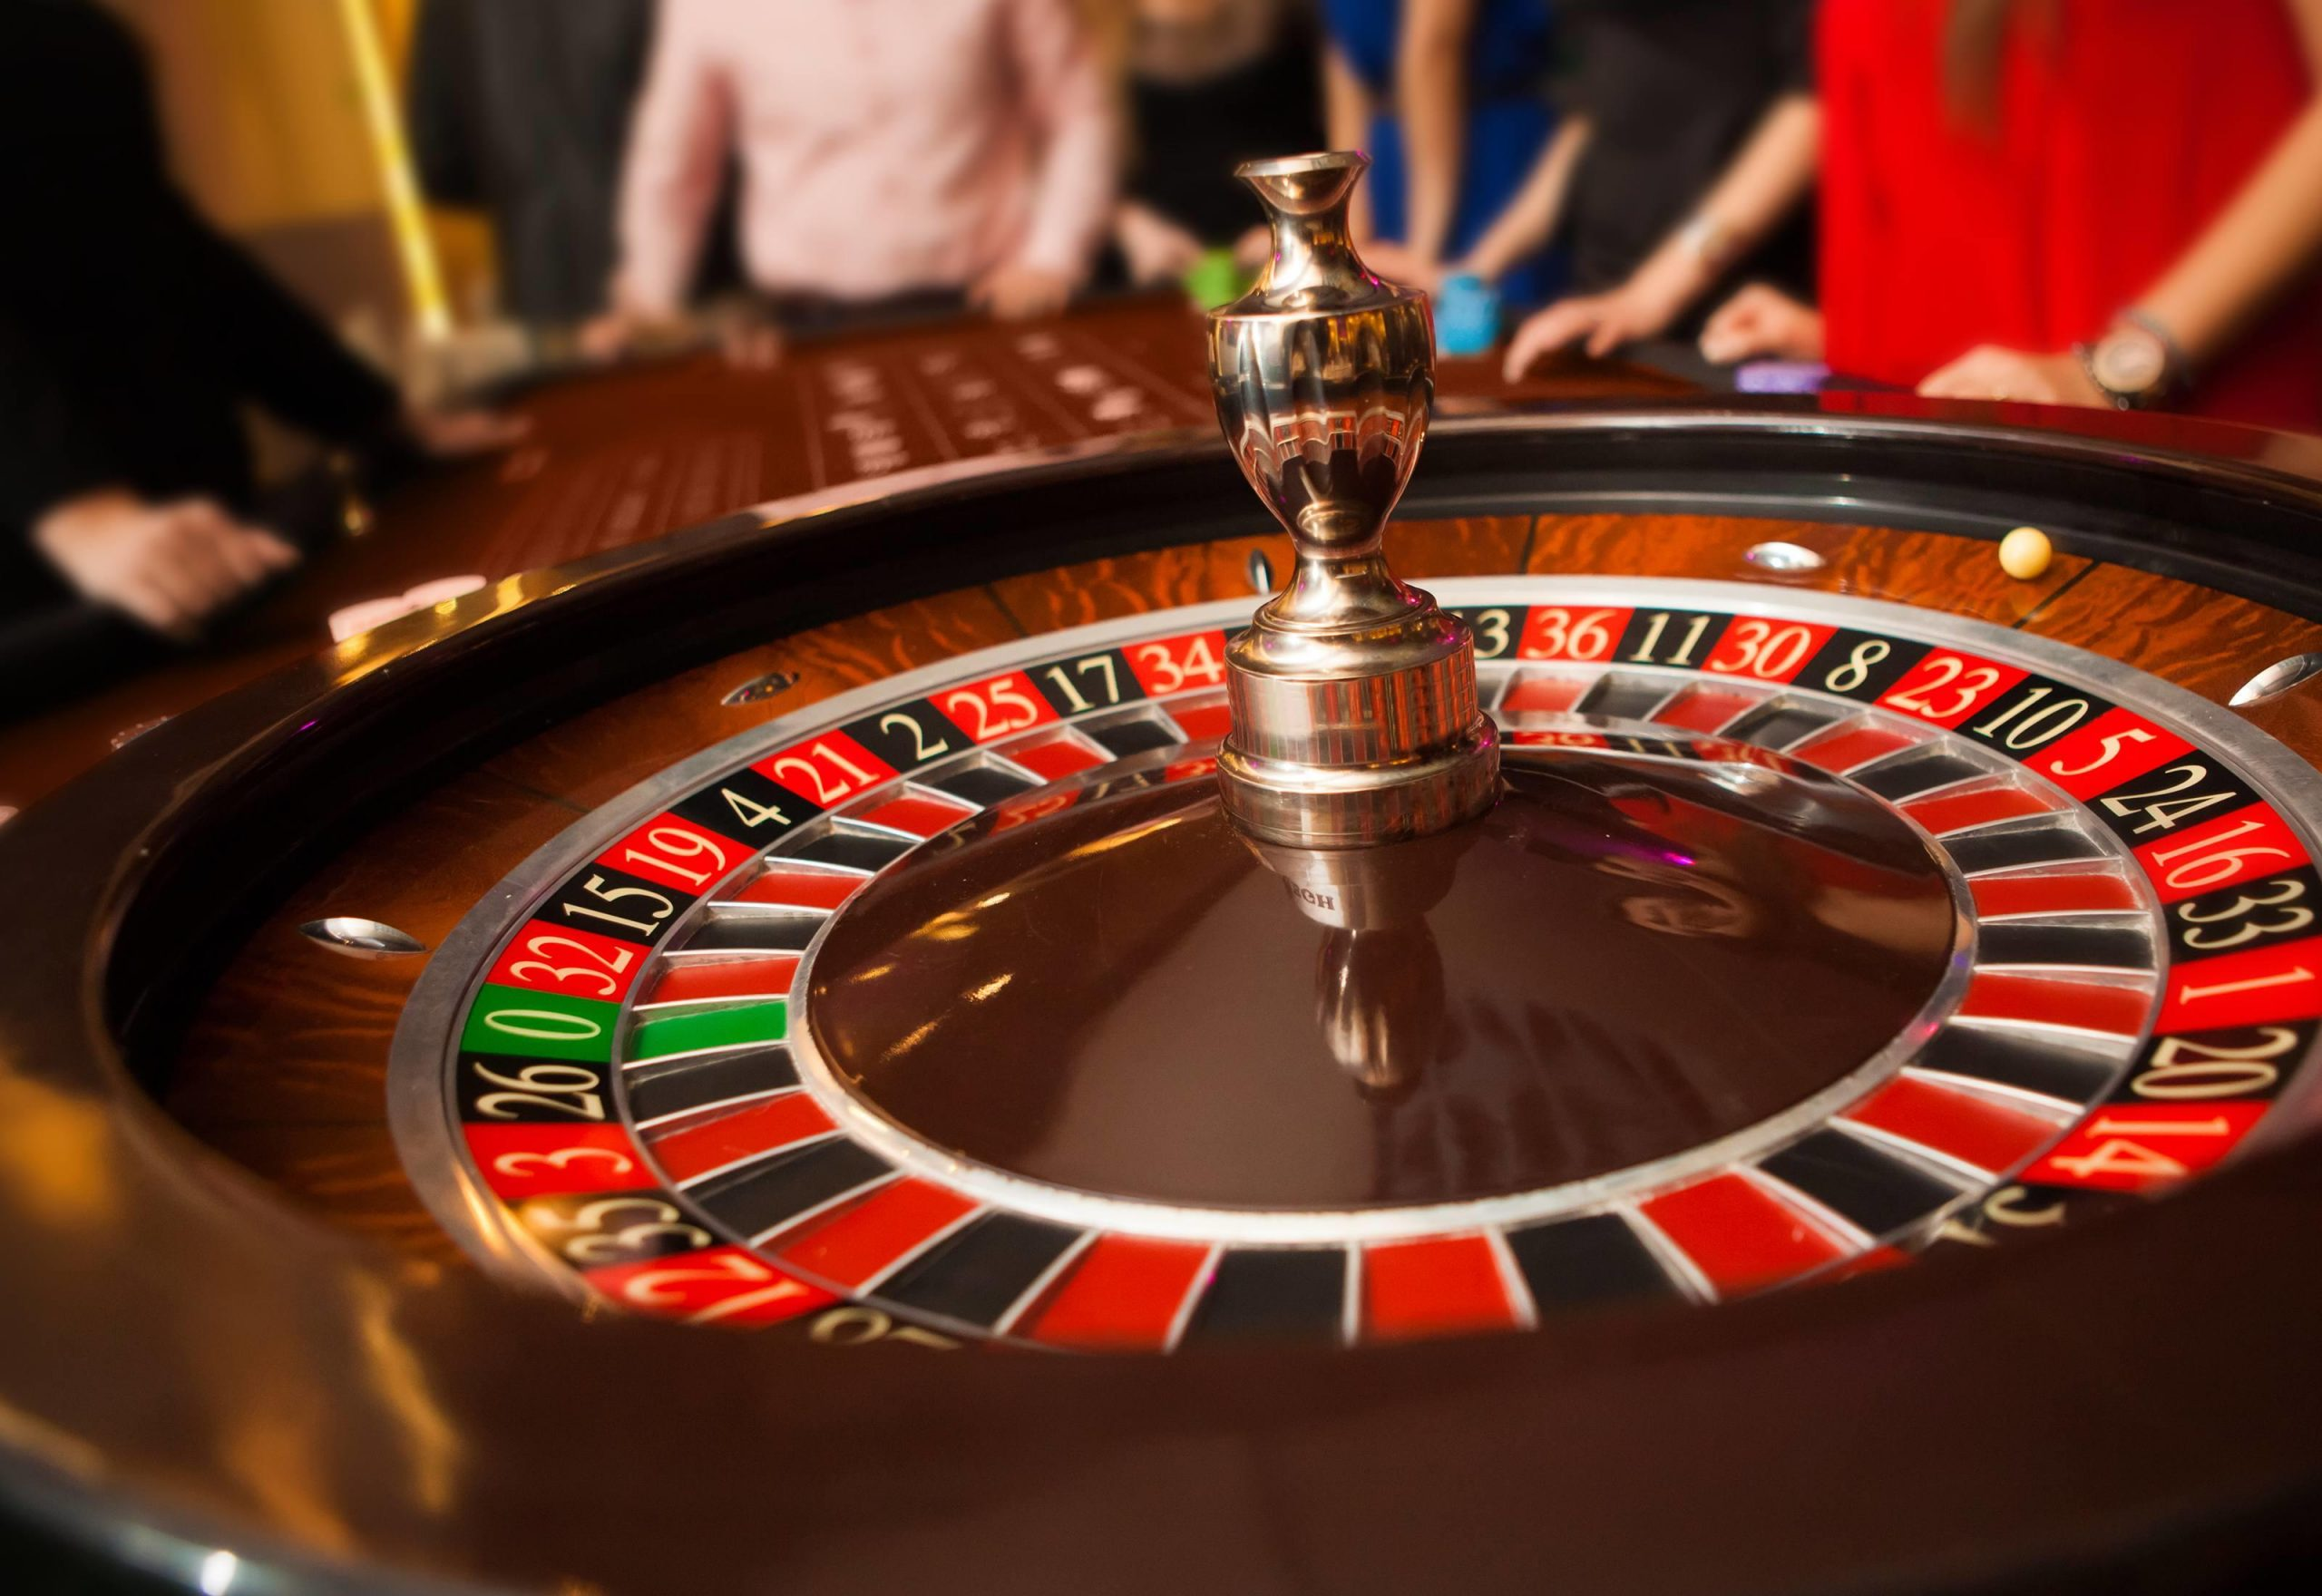 Trustworthy Outlet for Online Casino Entertainment in Thailand